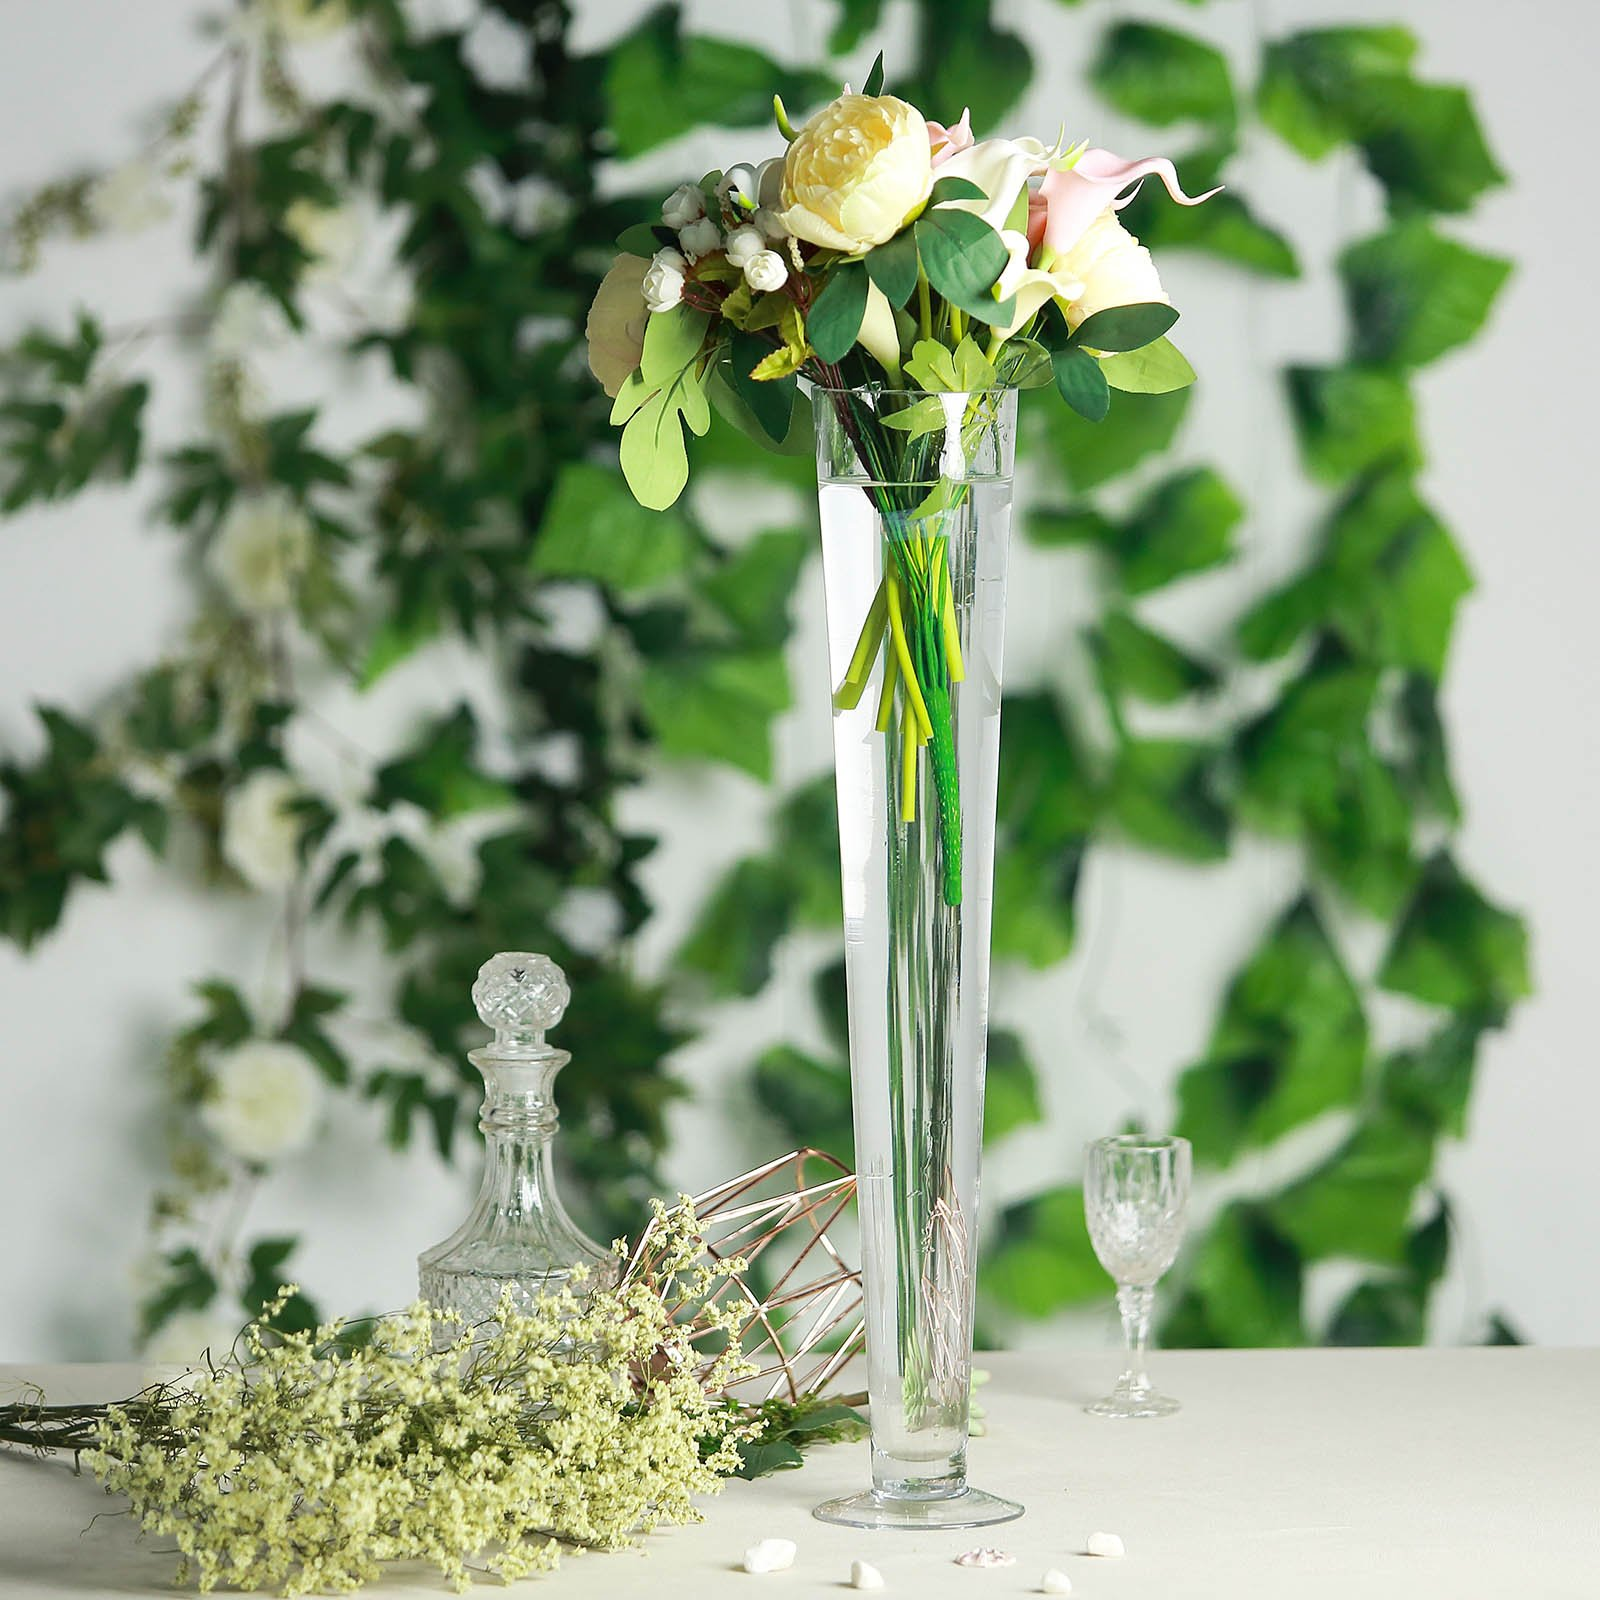 Efavormart Trumpet Glass Centerpiece Flower Vase for Wedding Party Banquet Events Centerpiece Decoration 6pcs/set